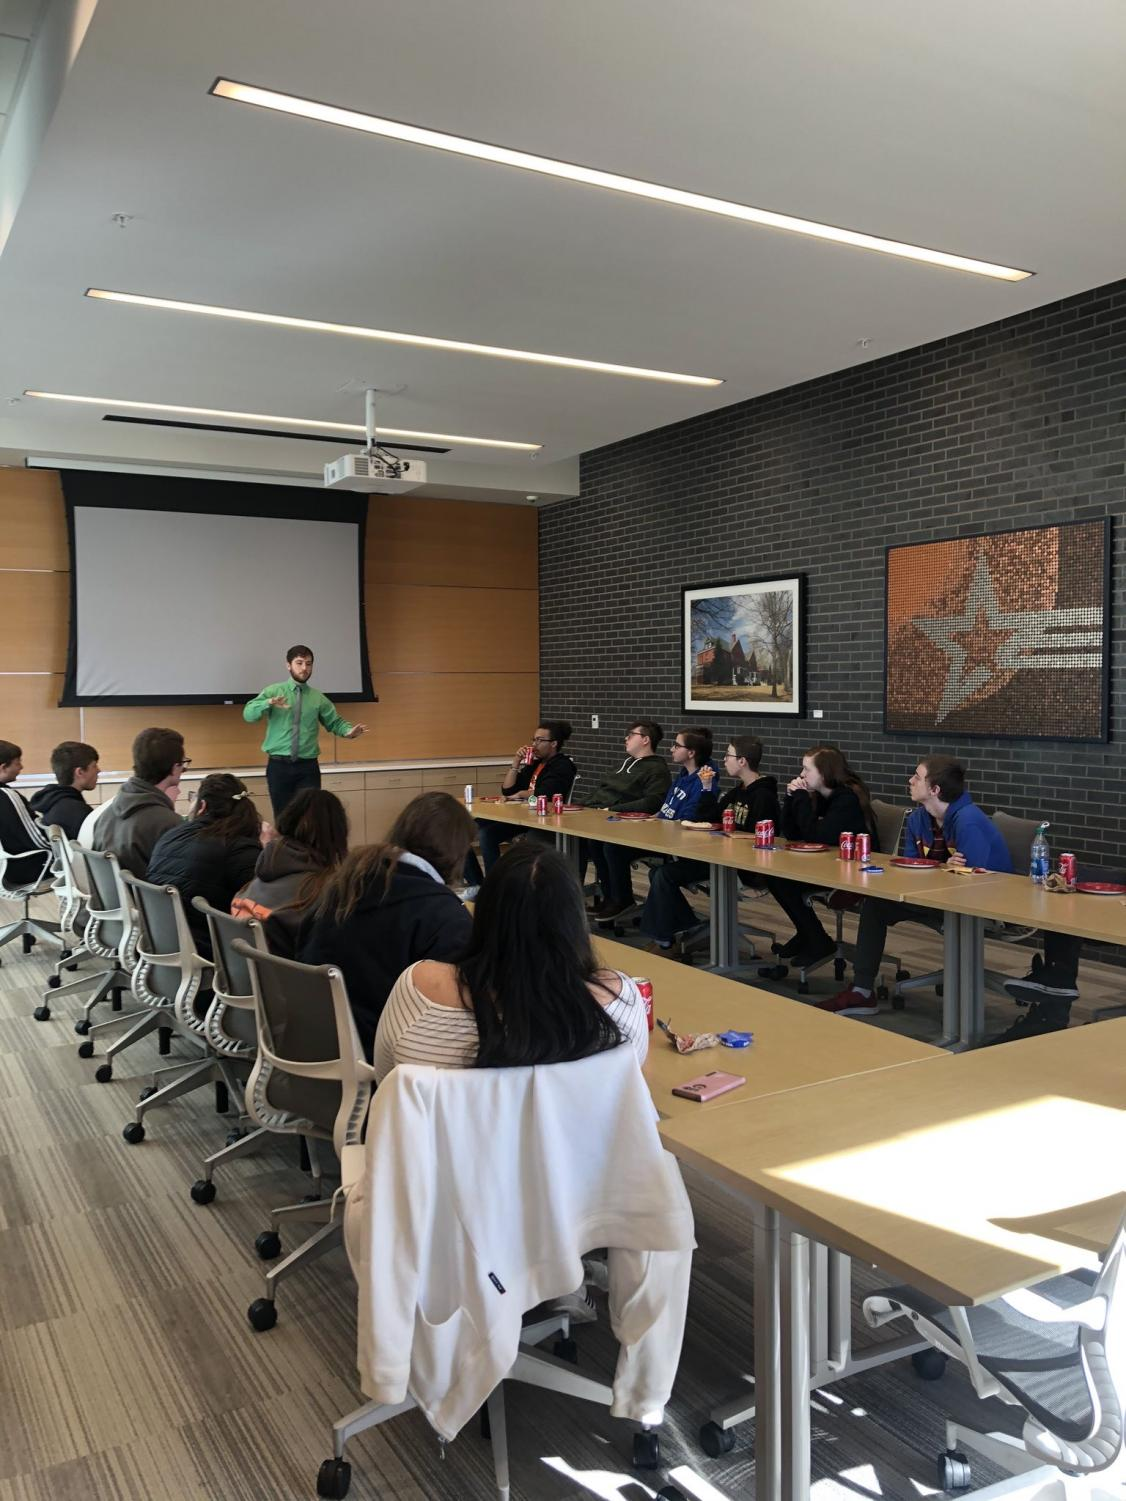 TJ Computer Science students learning about I.T., eating pizza at Cobalt Credit Union for Careerockit week.